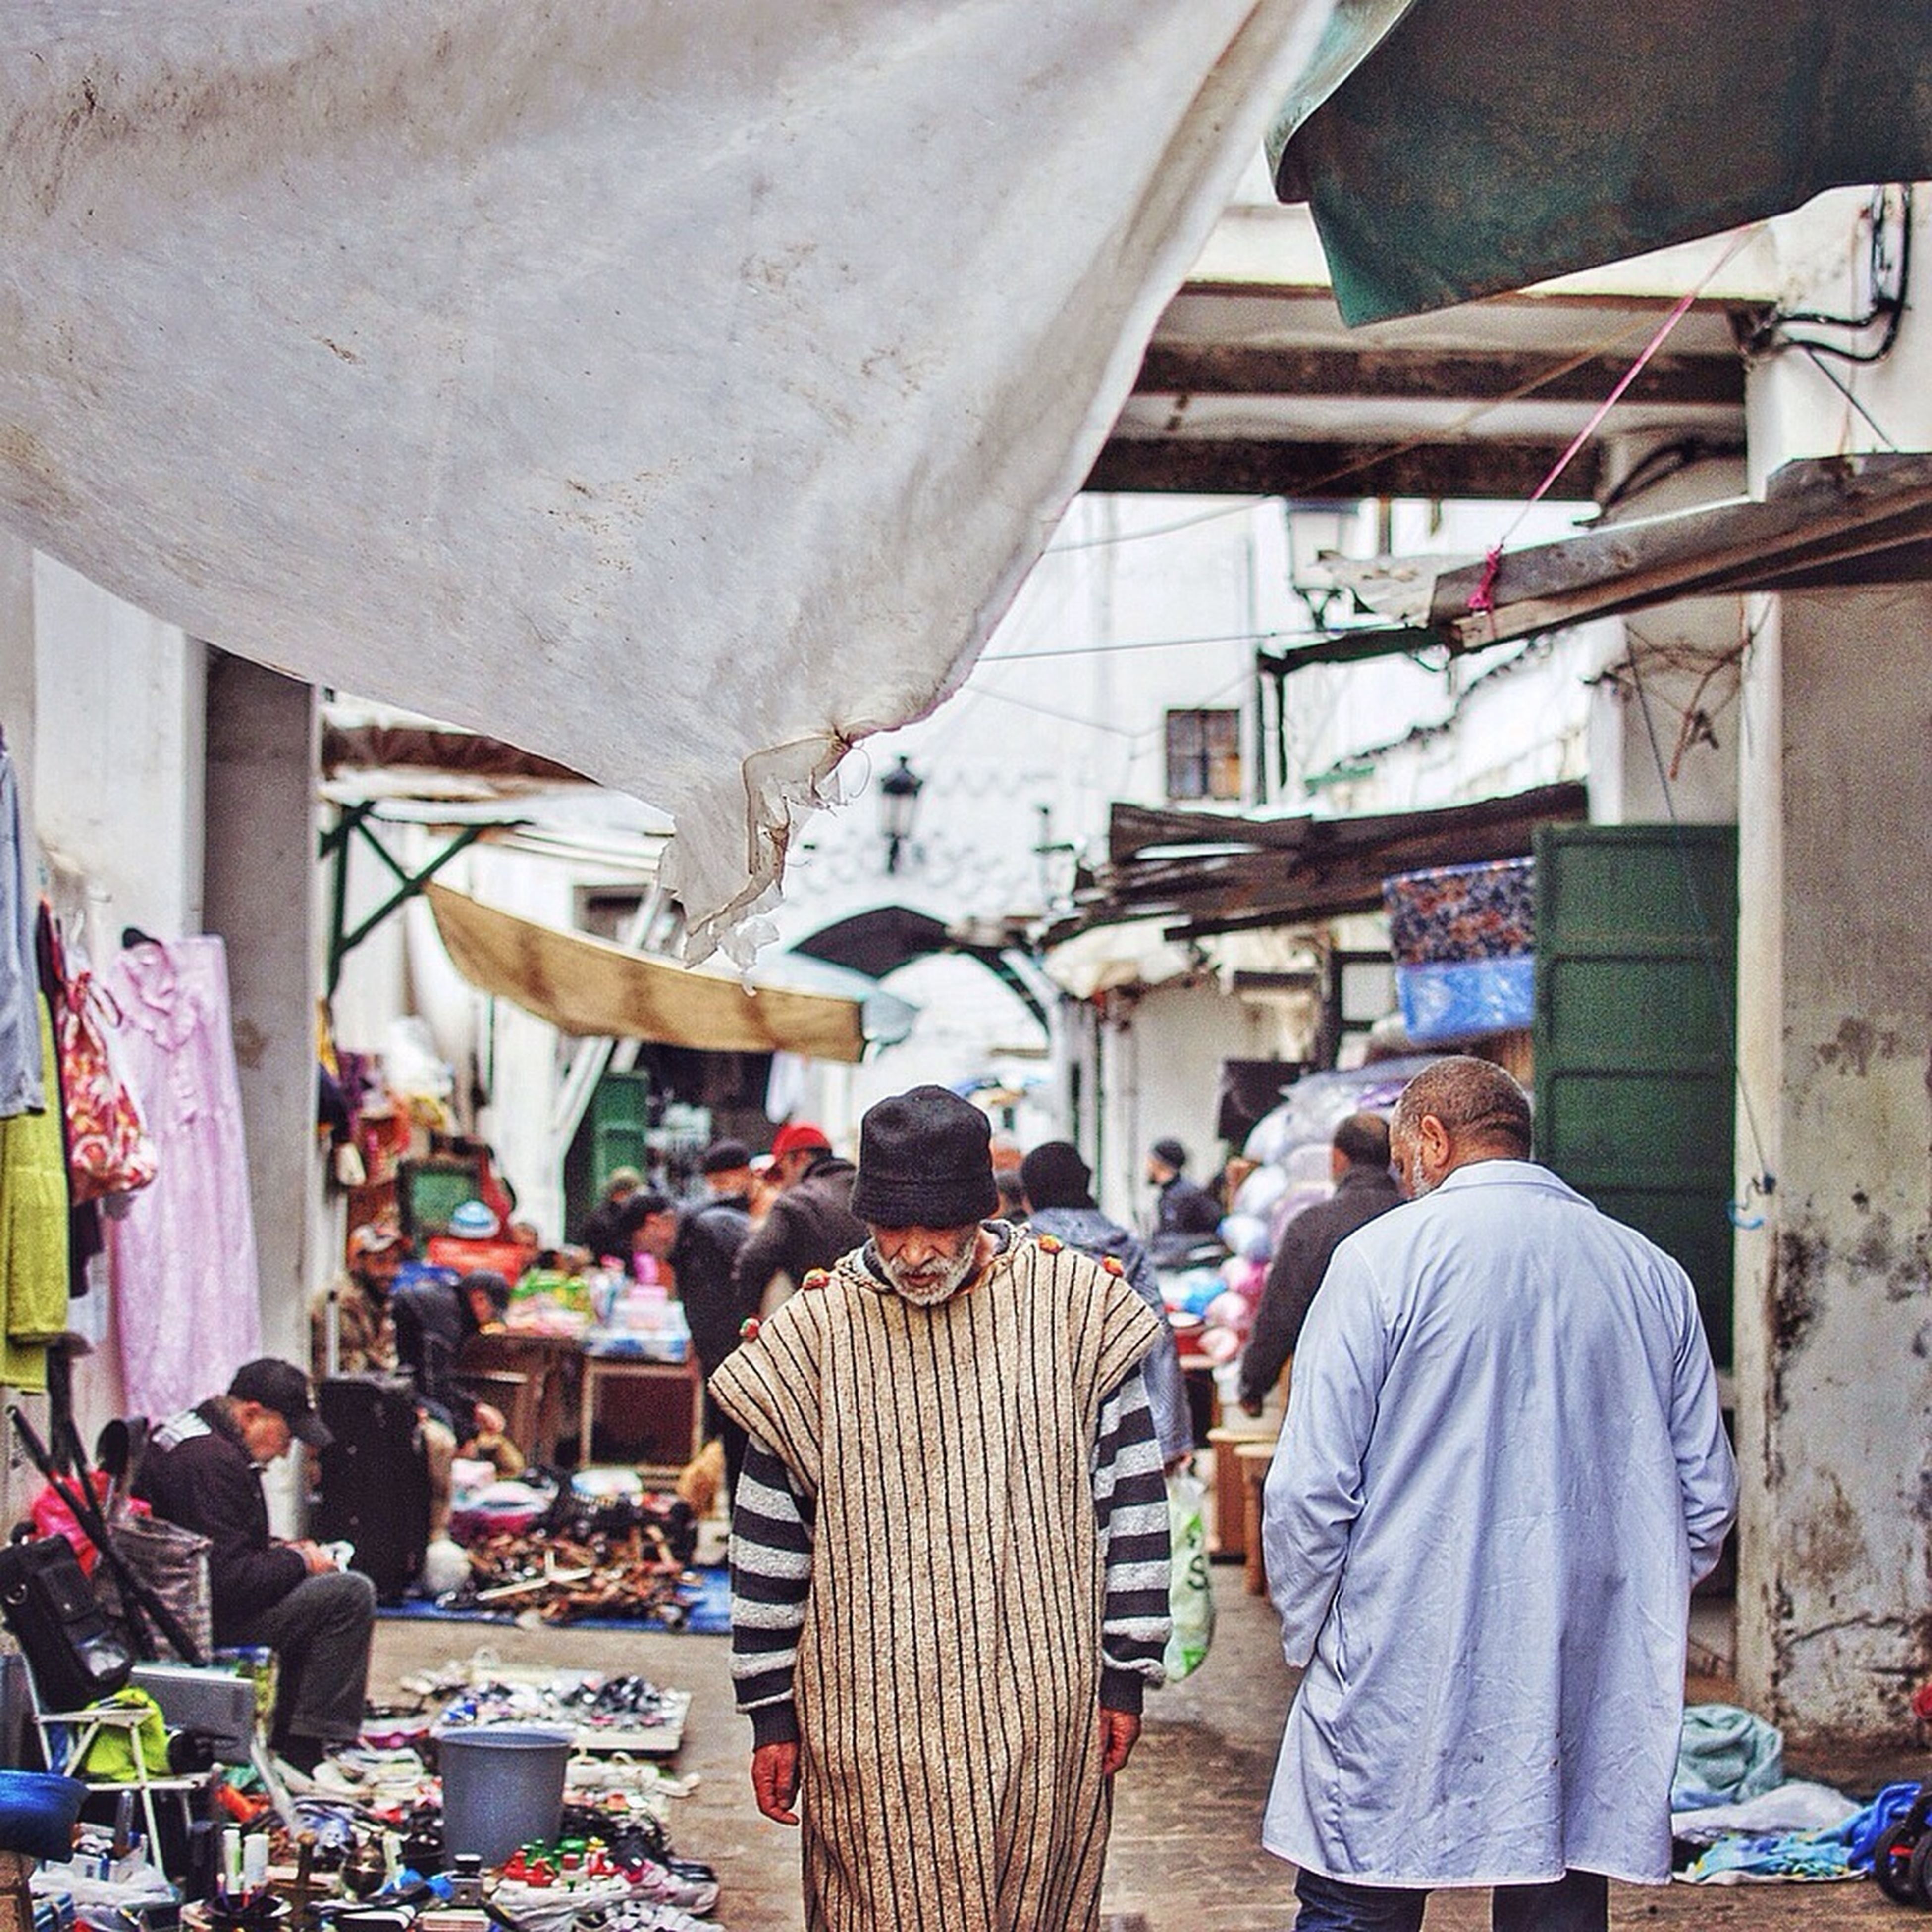 men, person, architecture, built structure, lifestyles, building exterior, market, large group of people, rear view, market stall, walking, leisure activity, occupation, casual clothing, city life, street, retail, shopping, working